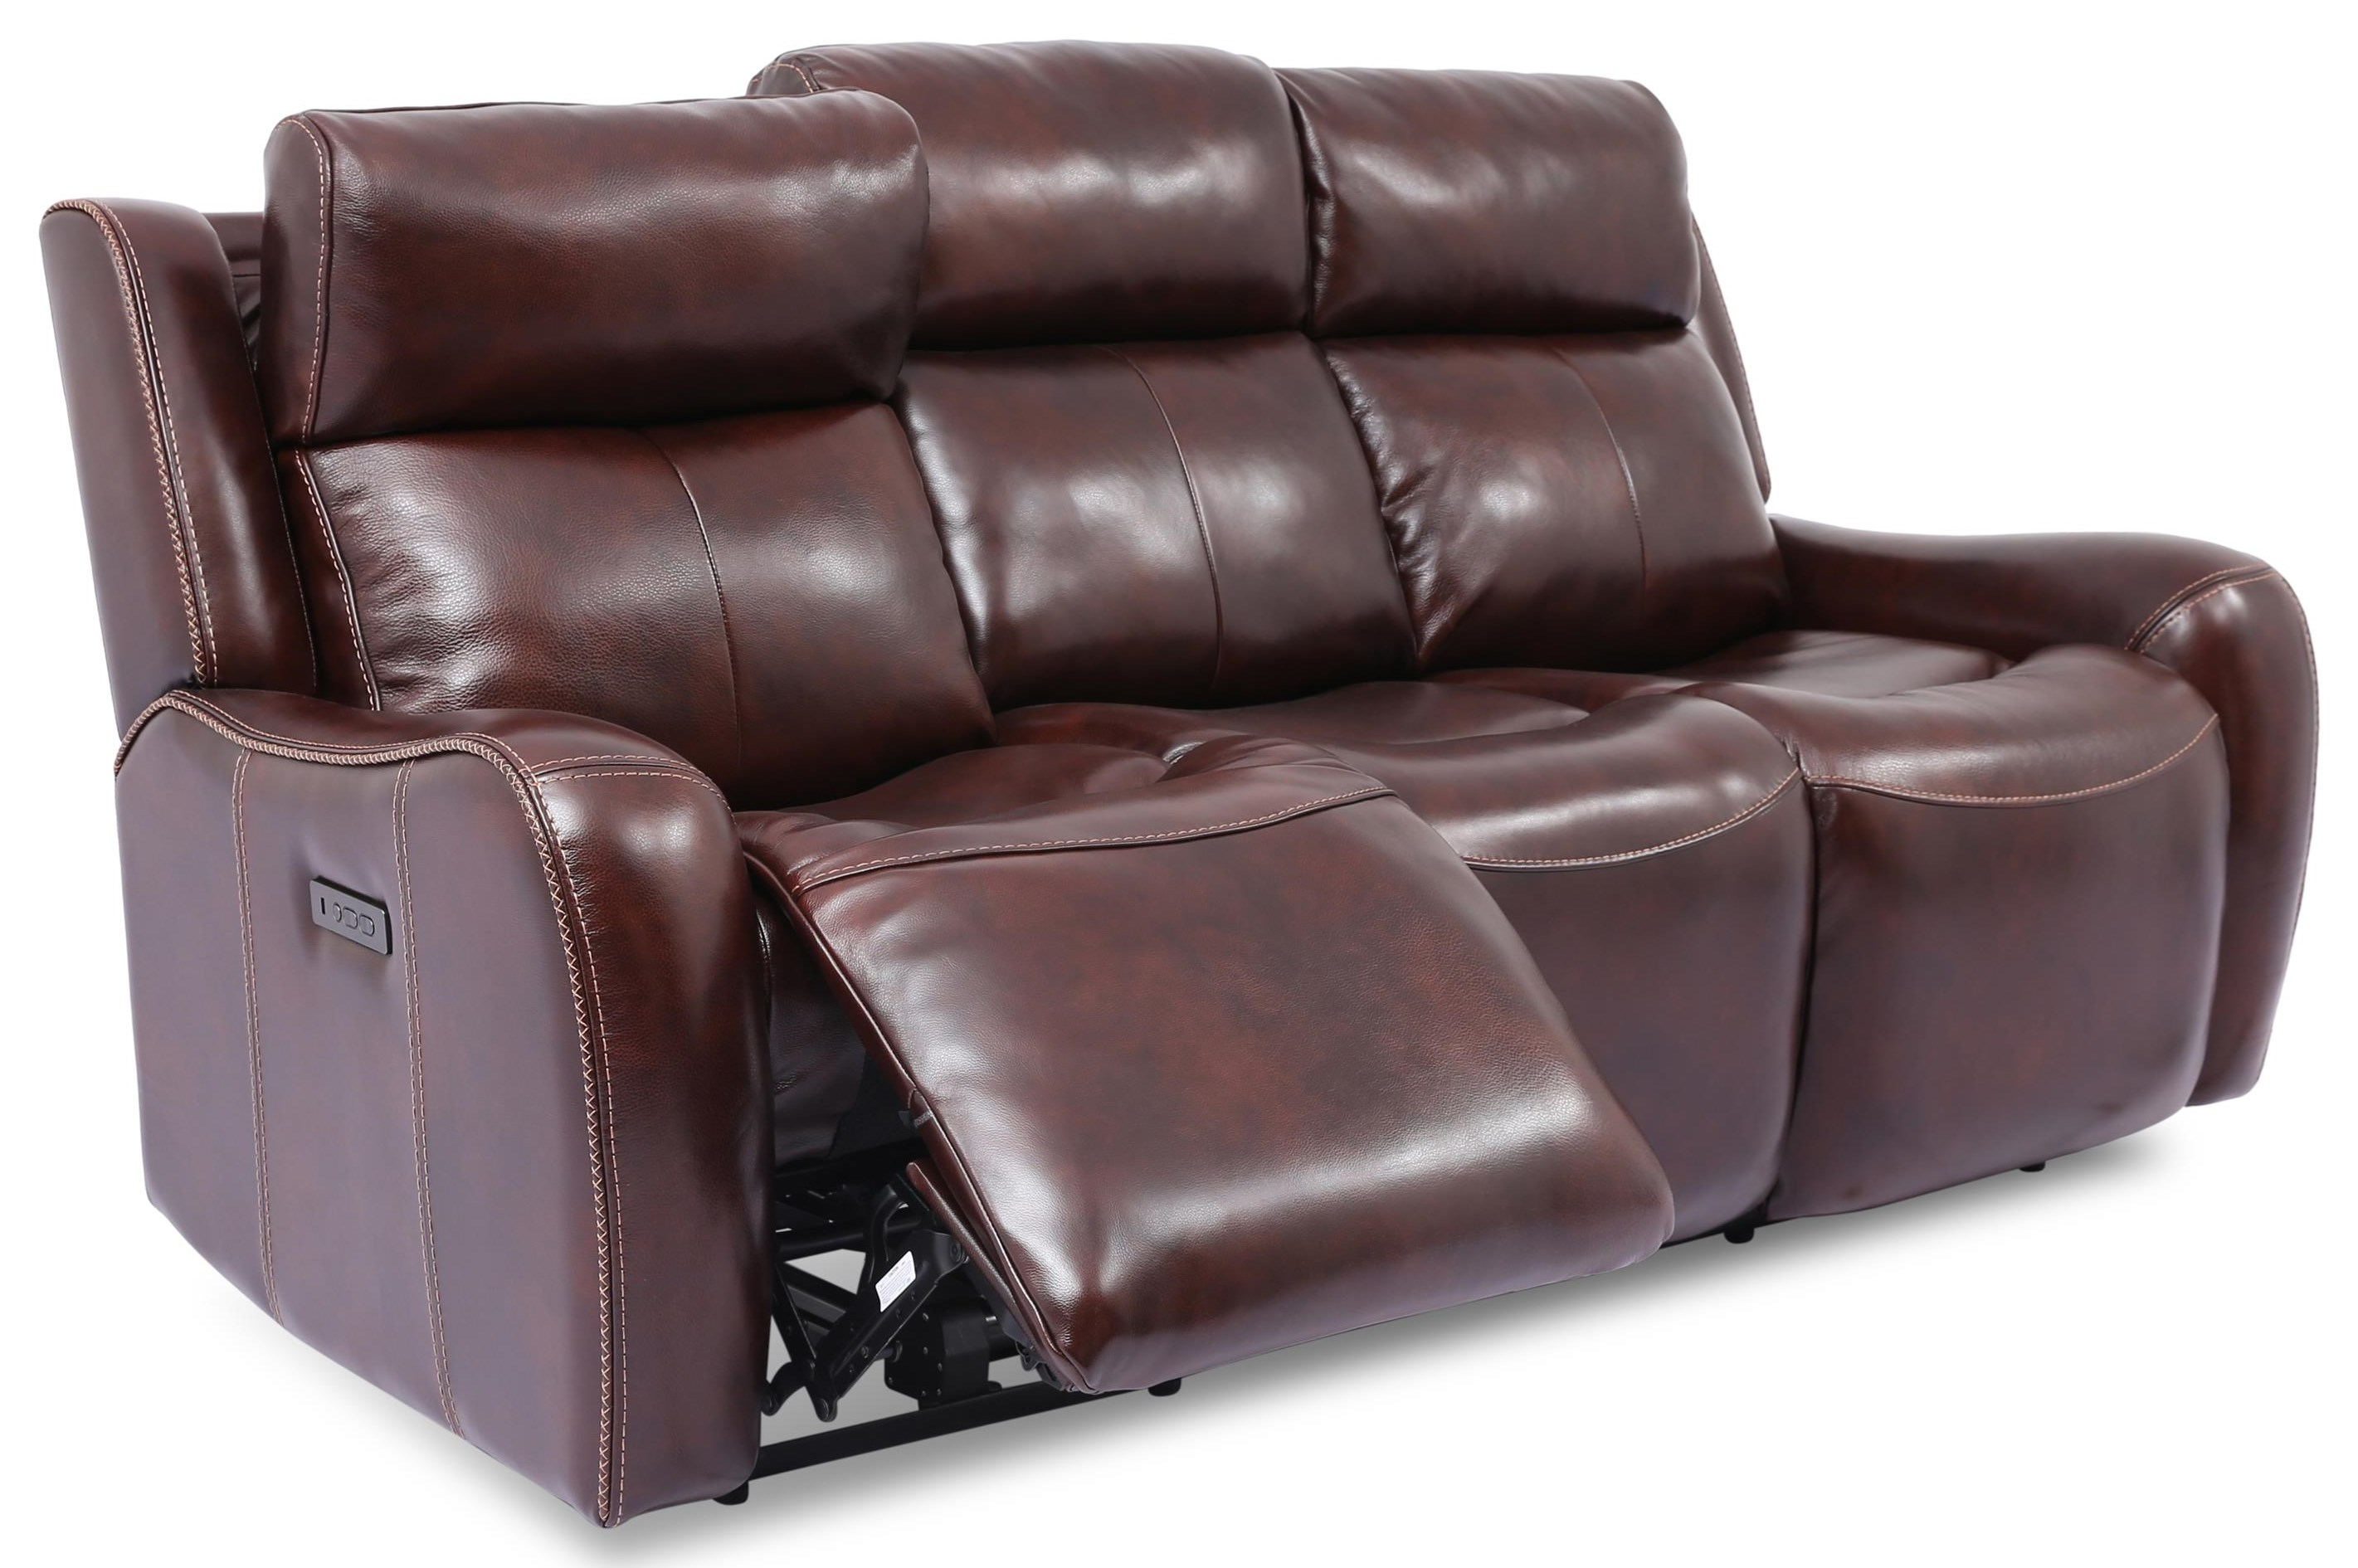 70093 Power Reclining Sofa by Cheers at Beck's Furniture